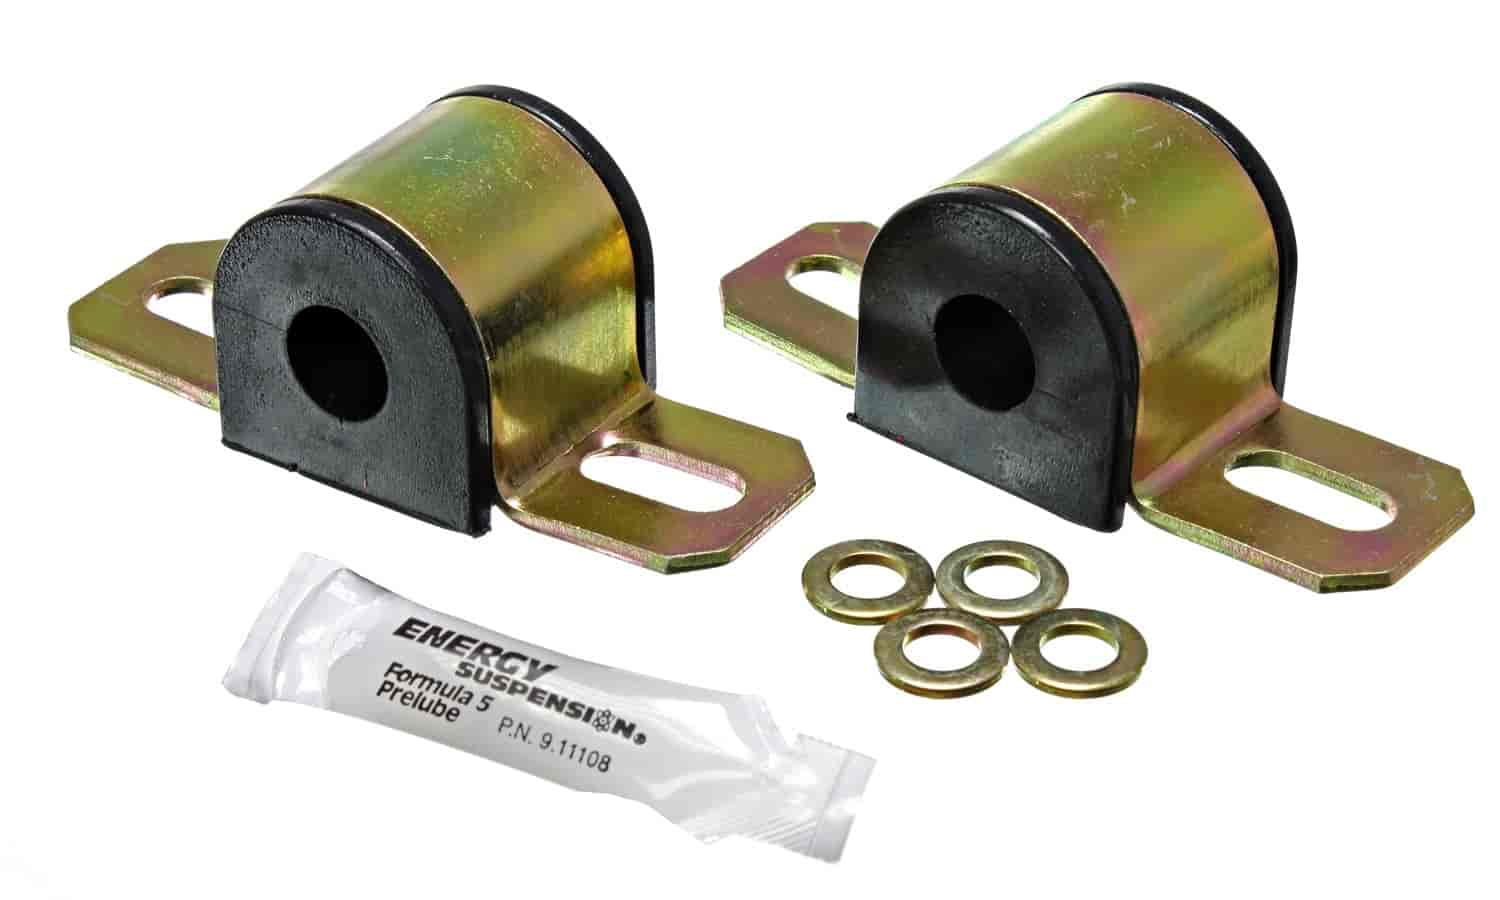 Energy Suspension 9-5104G